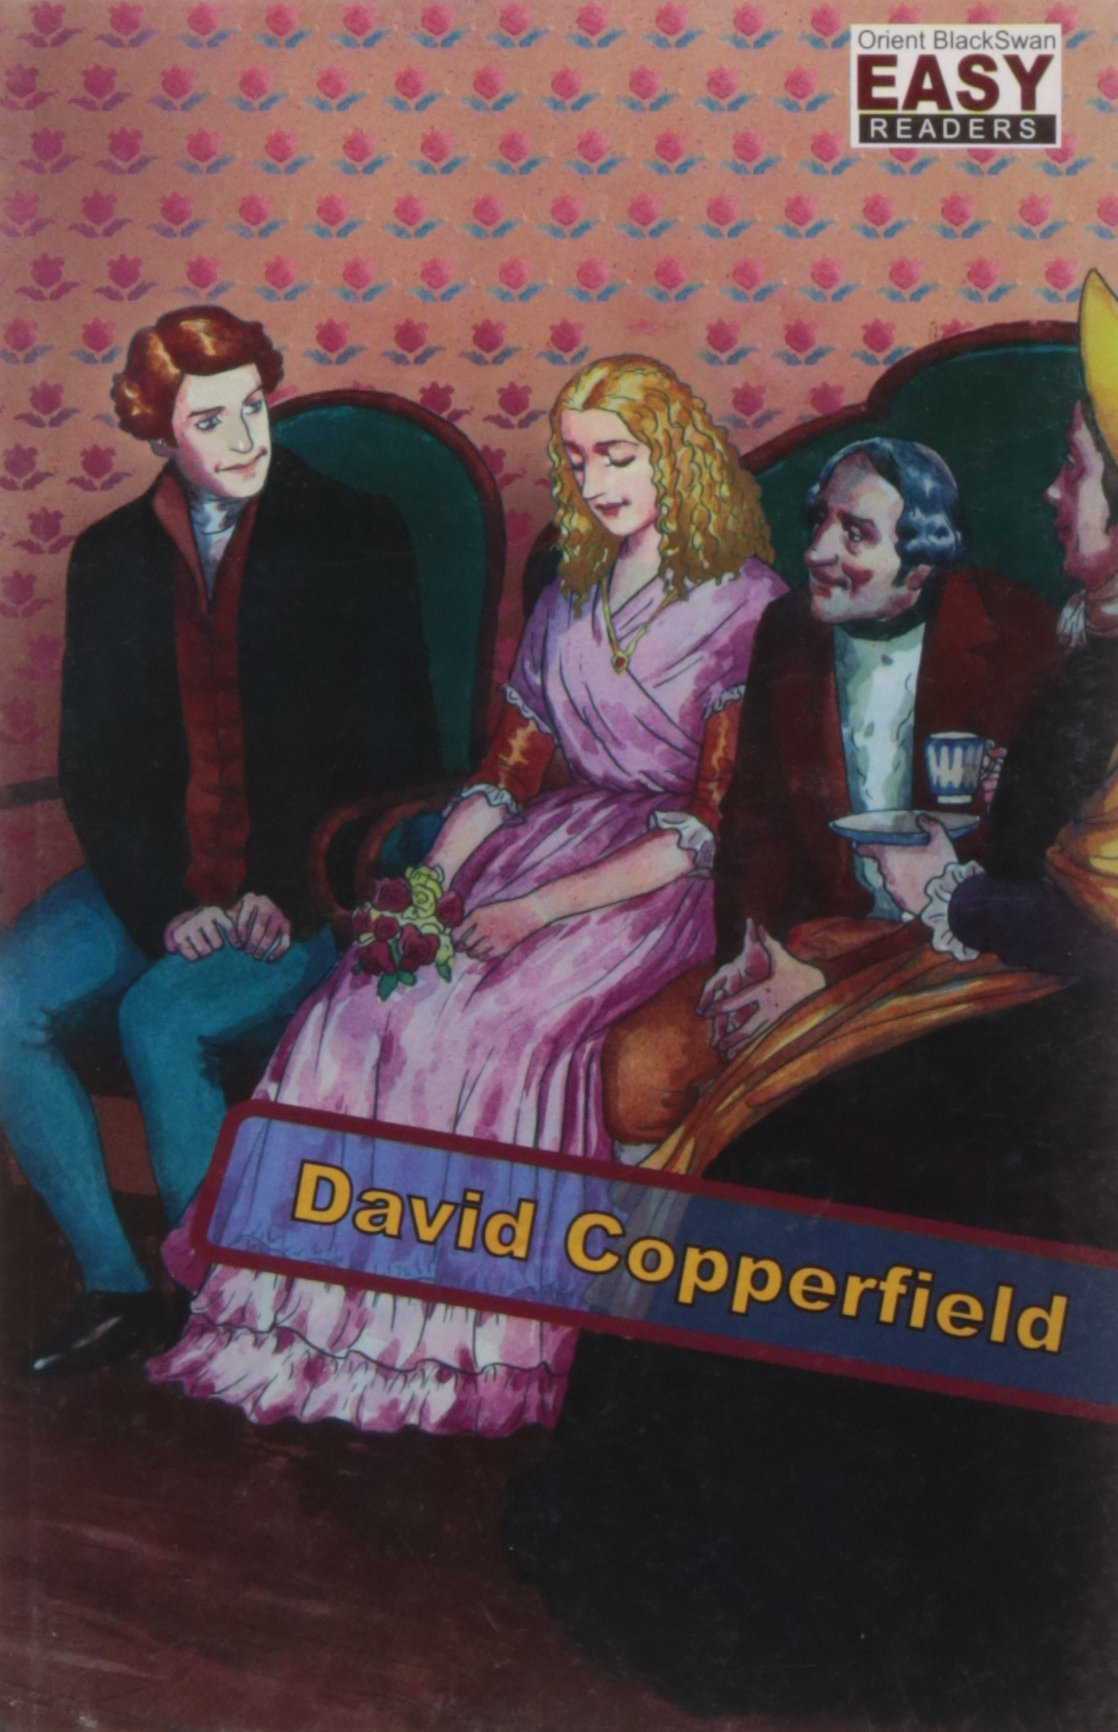 david copperfield ober grade 6 orient blackswan easy readers david copperfield ober grade 6 orient blackswan easy readers in charles dickens books